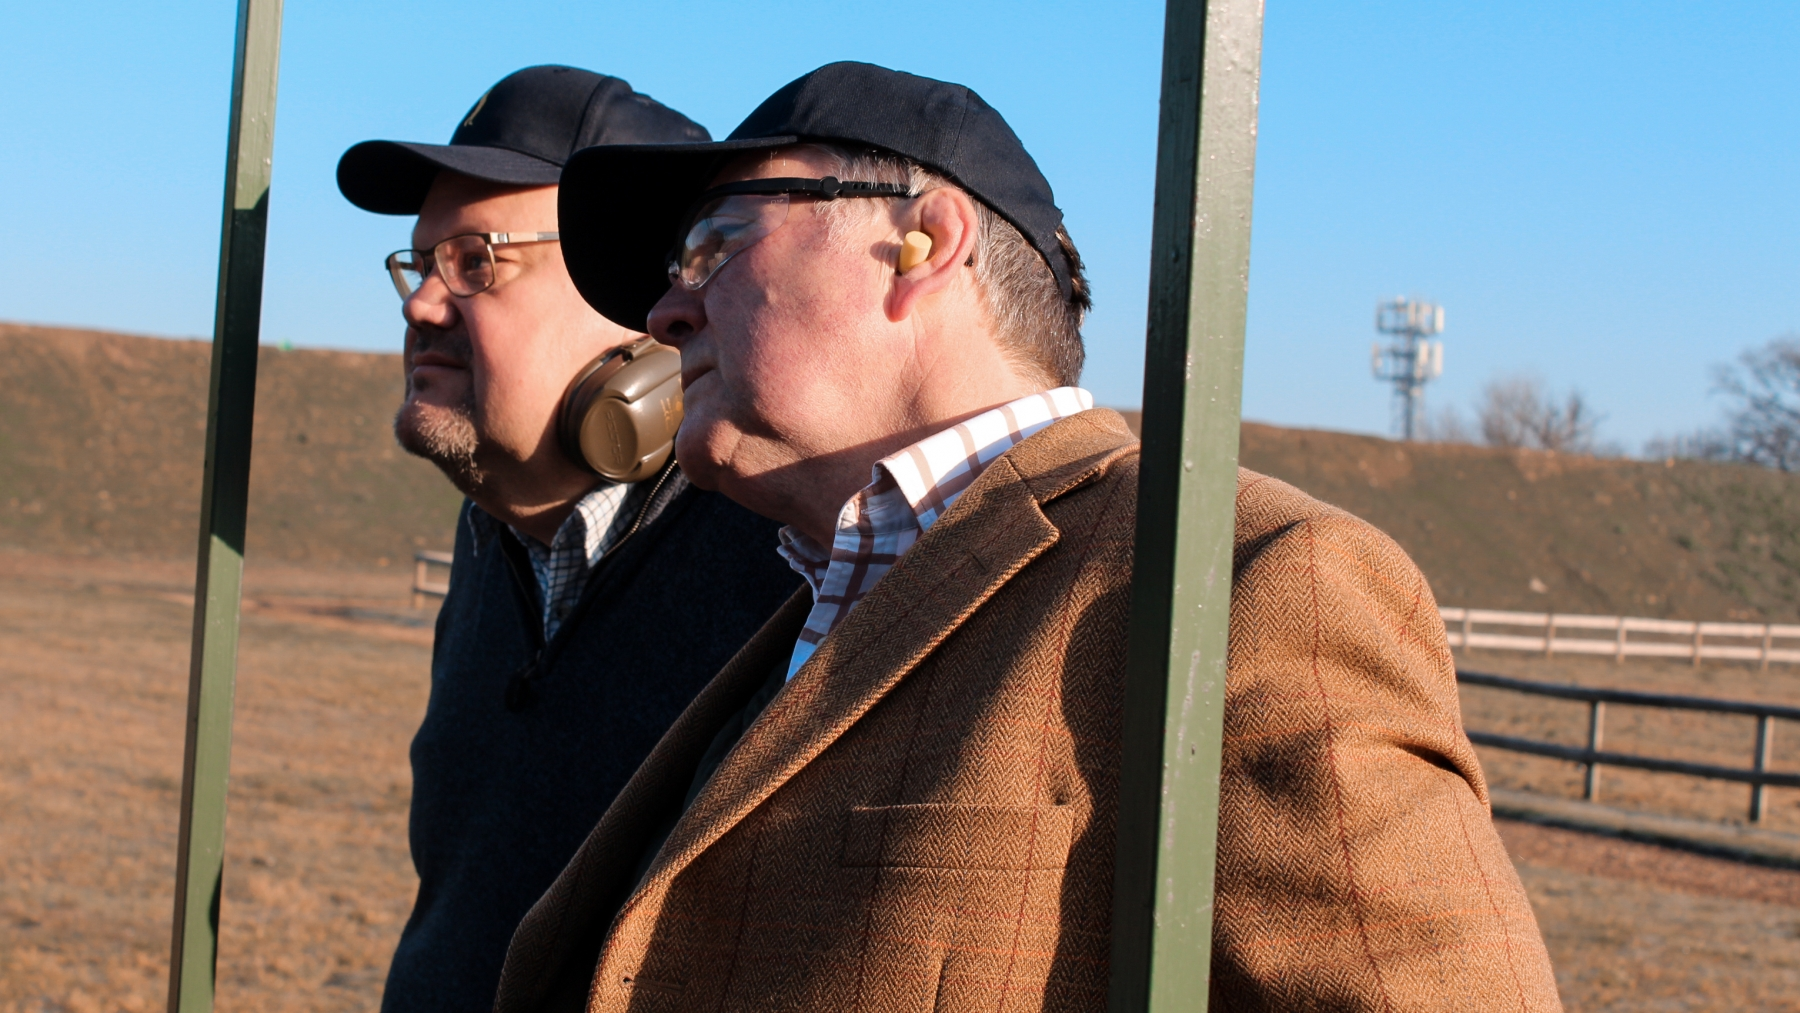 Clay Pigeon Shoot 15.02.2019 (32 of 79)